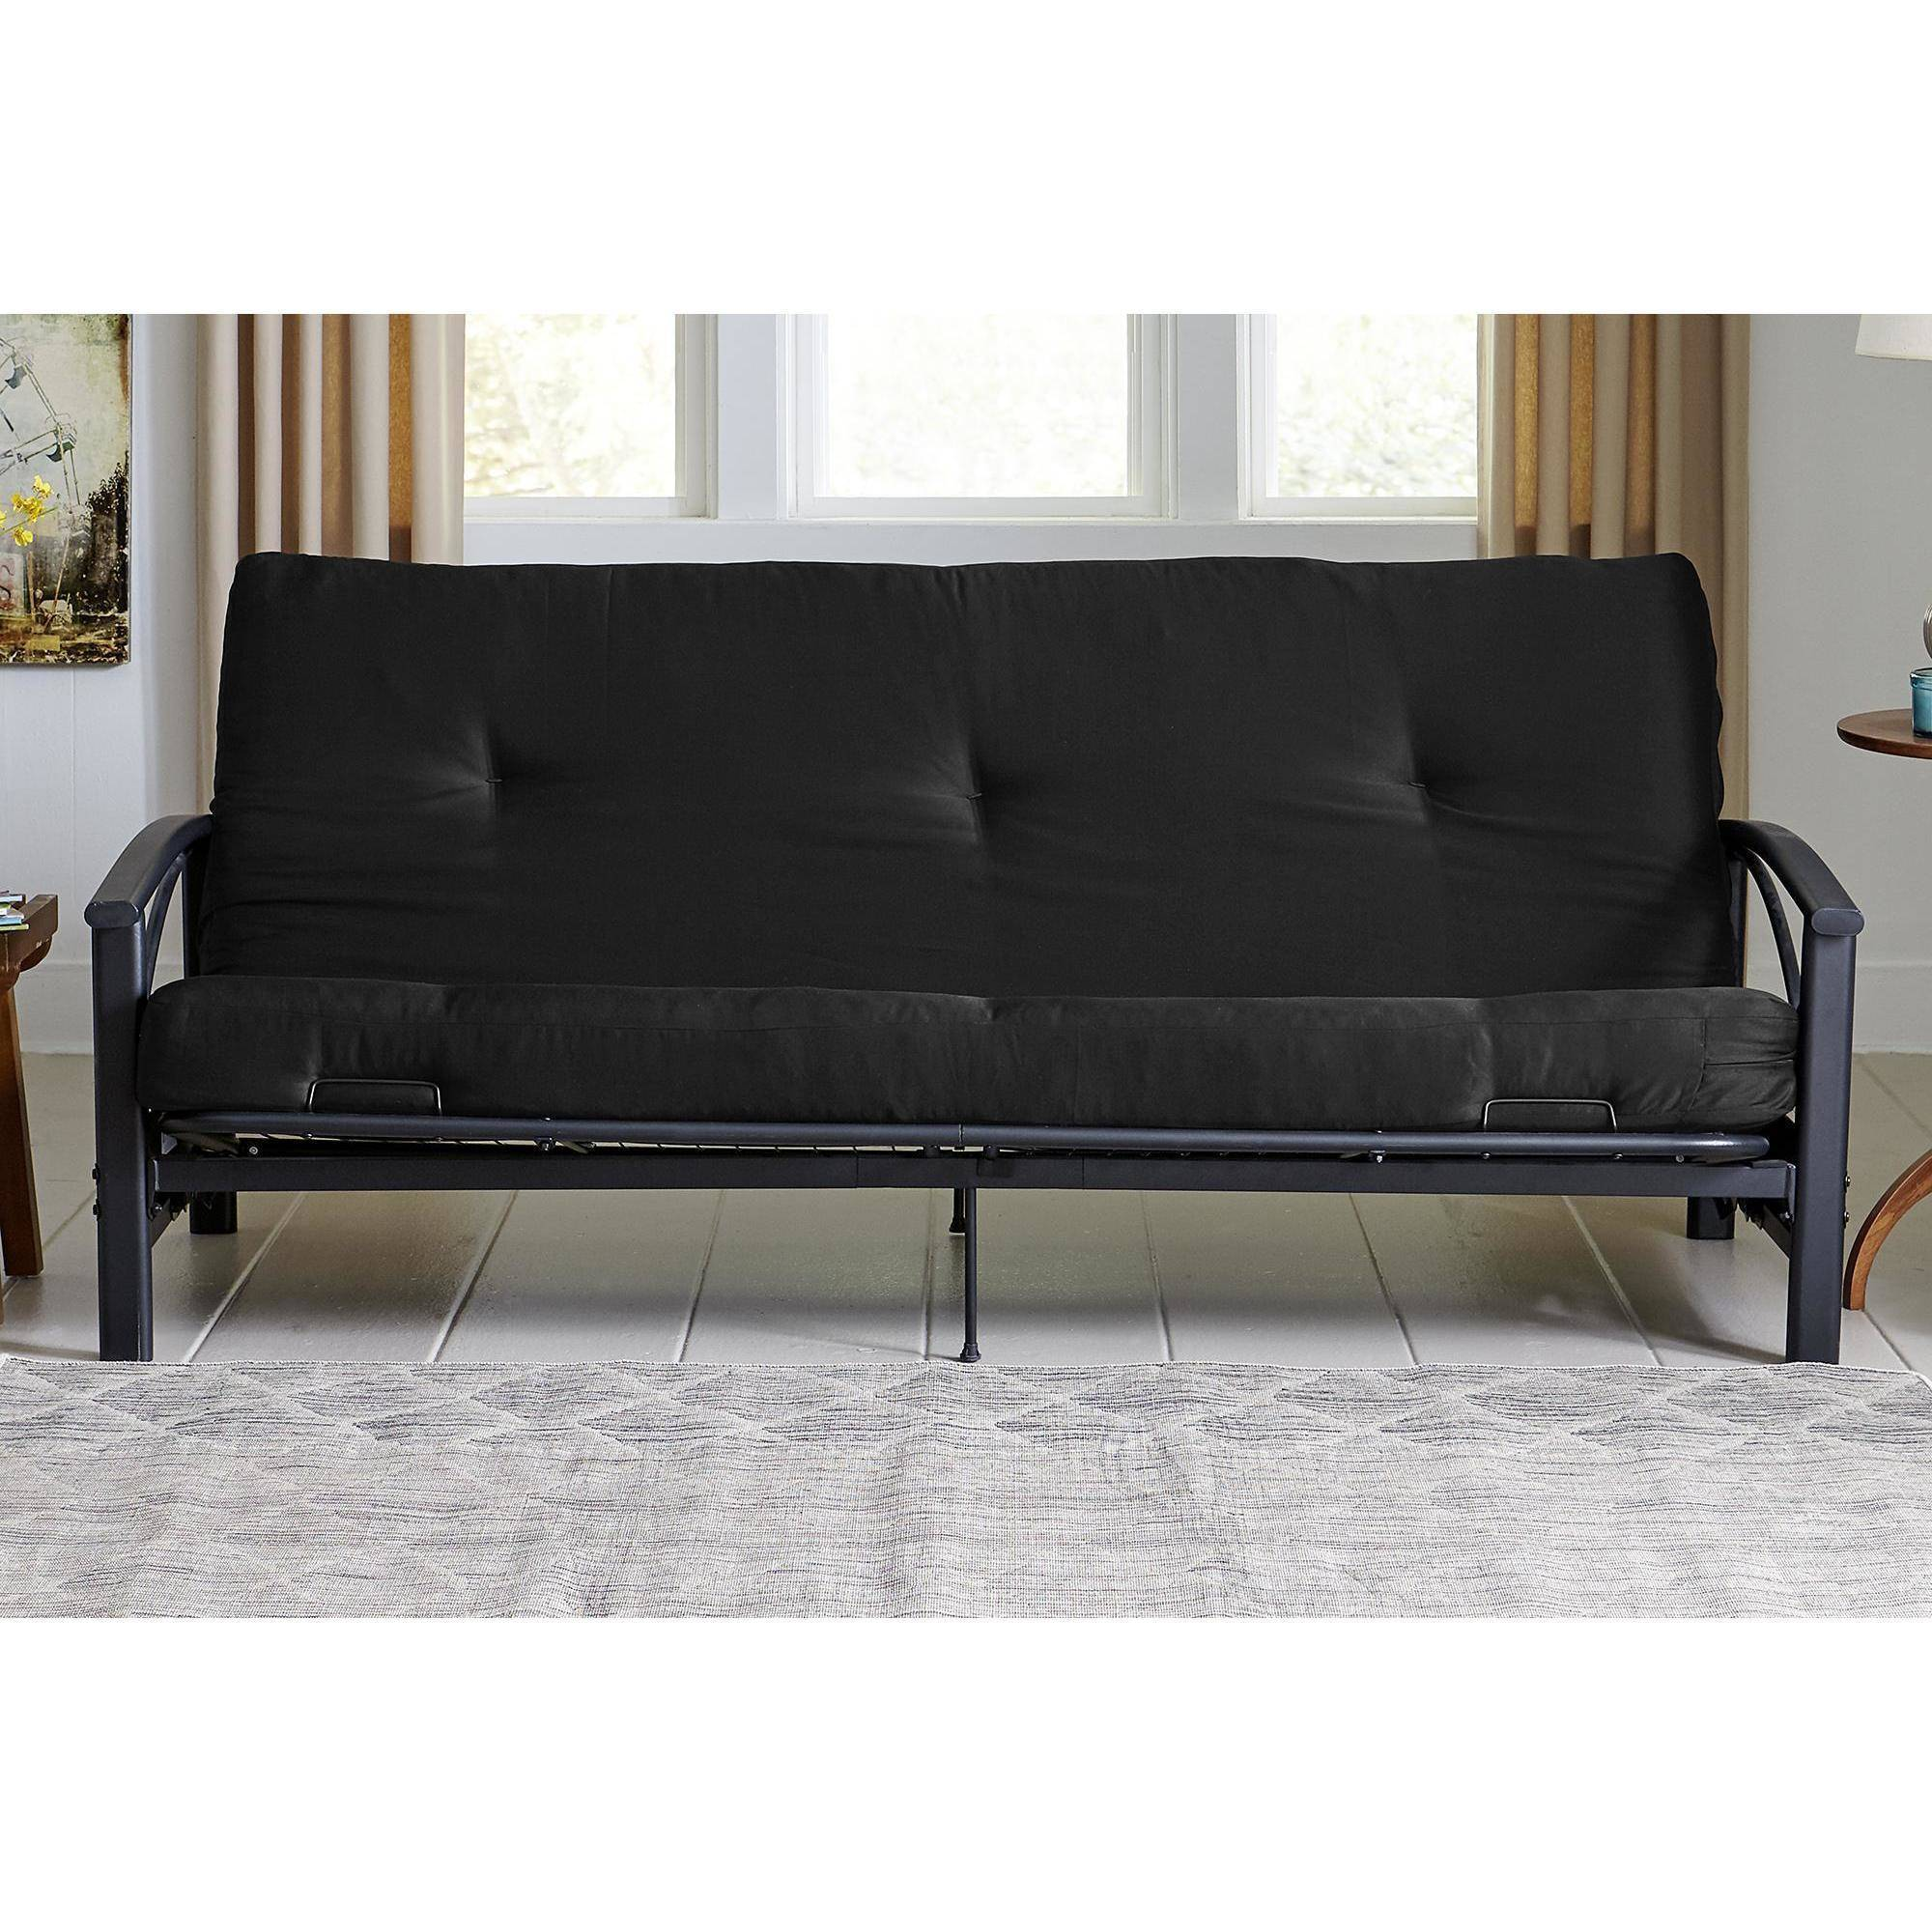 Dhp 6 Full Size Futon Mattress Black